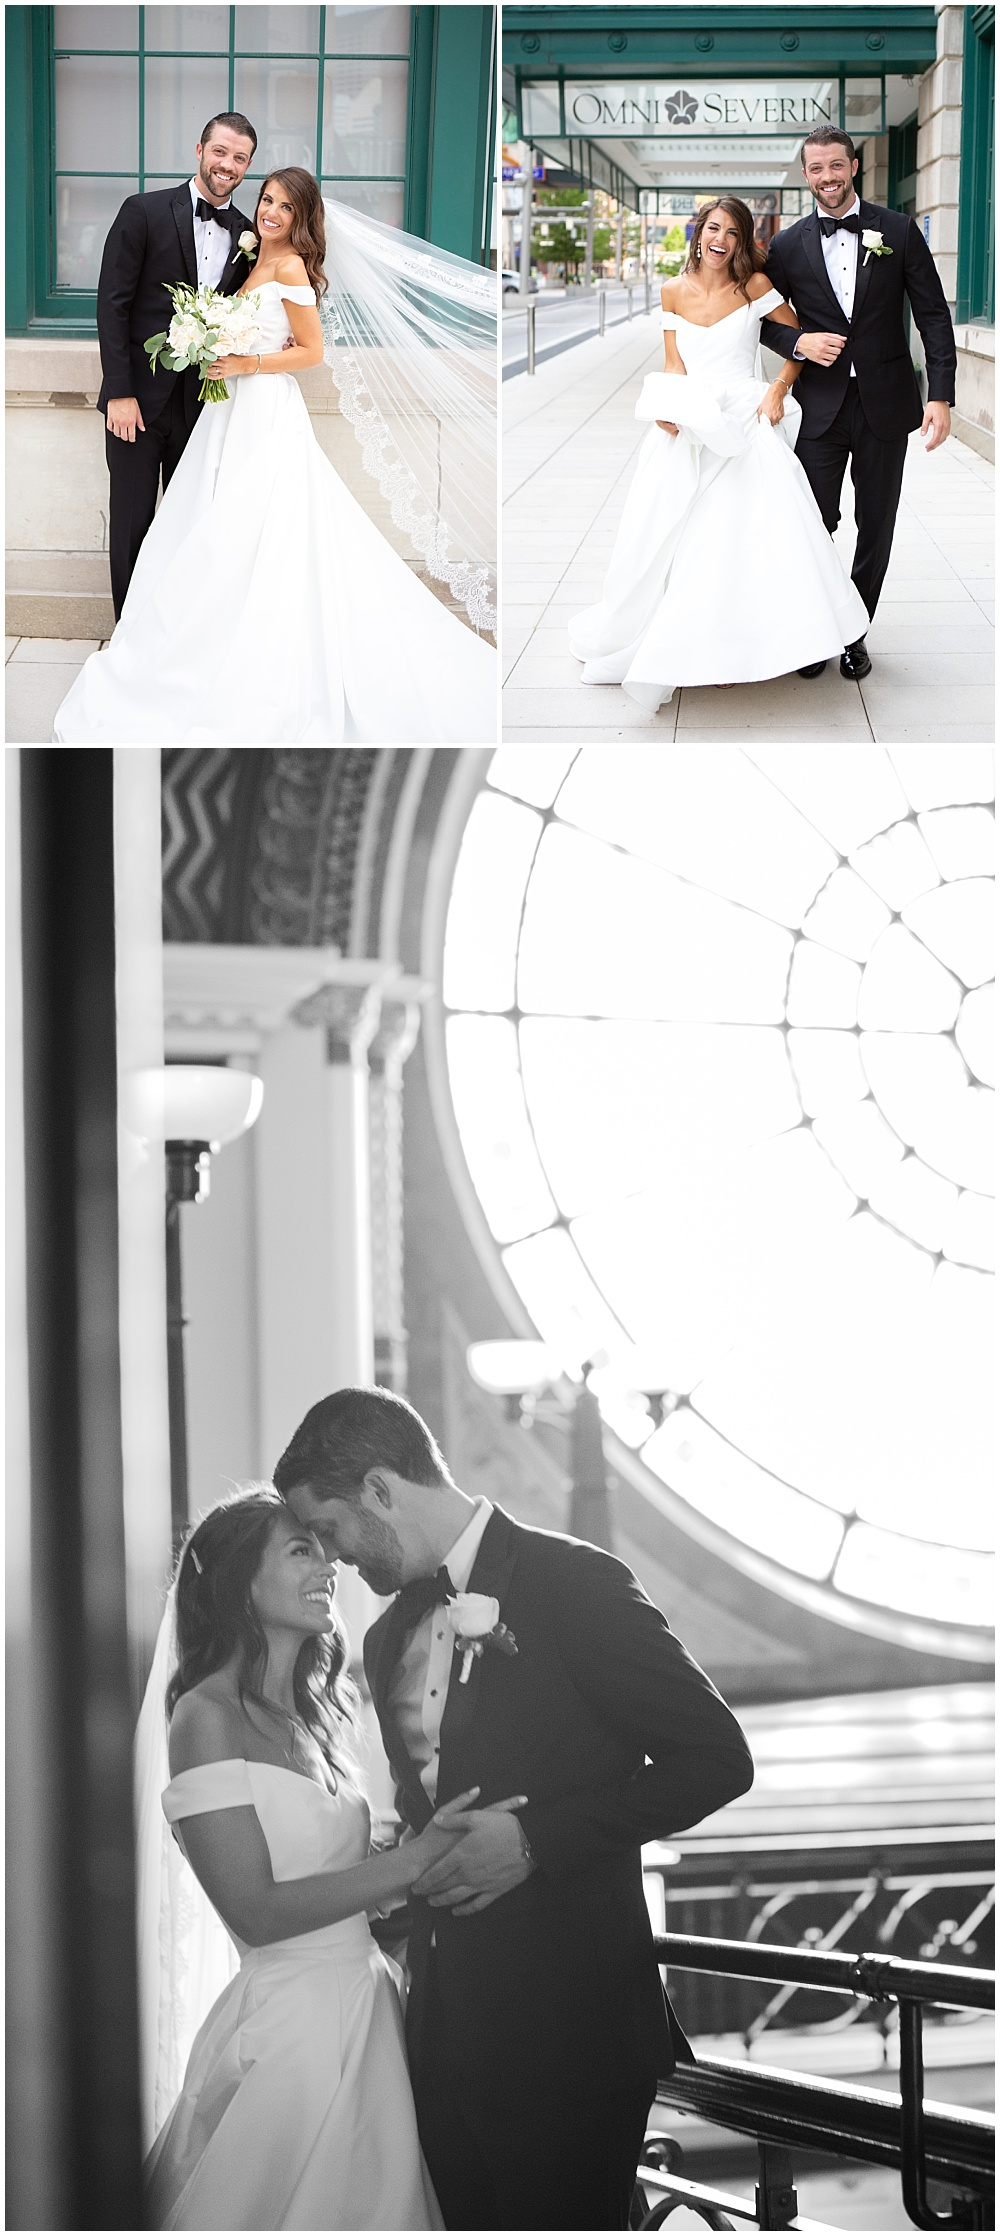 A classic downtown Indianapolis wedding with soft neutrals and the most breathtaking bride.